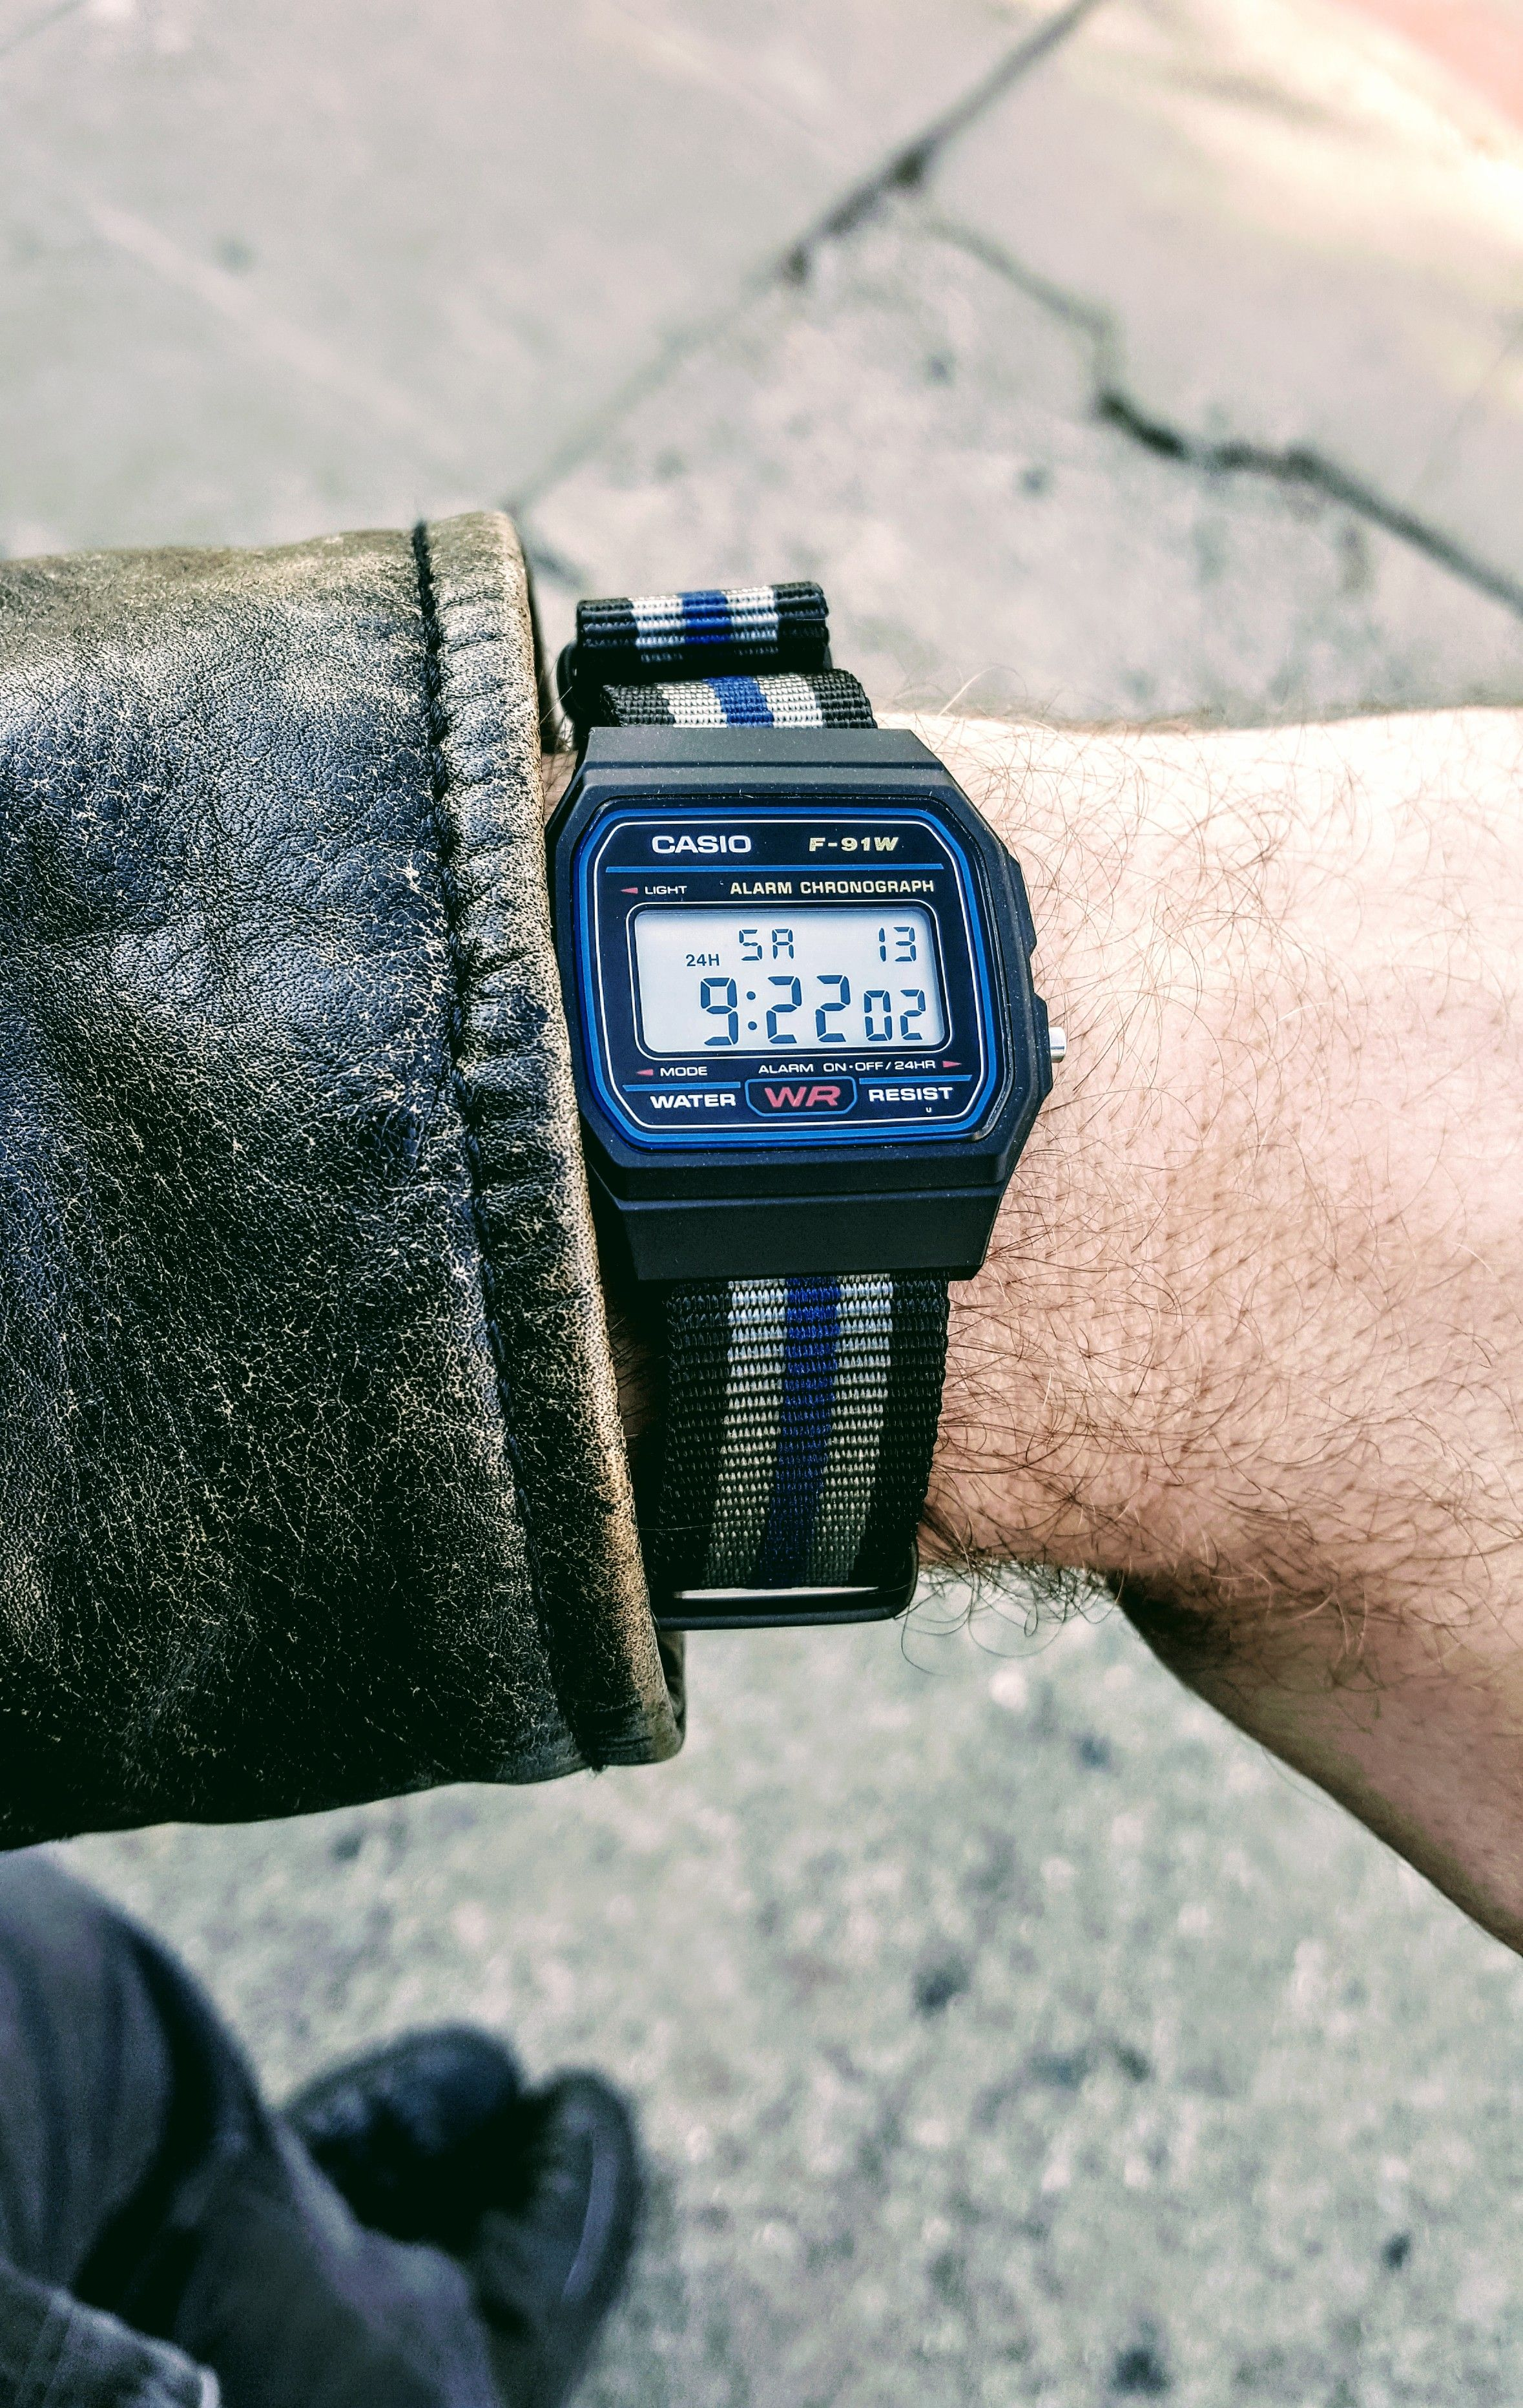 47567fcc956  Casio  Going digital today why not  F-91W NATO http